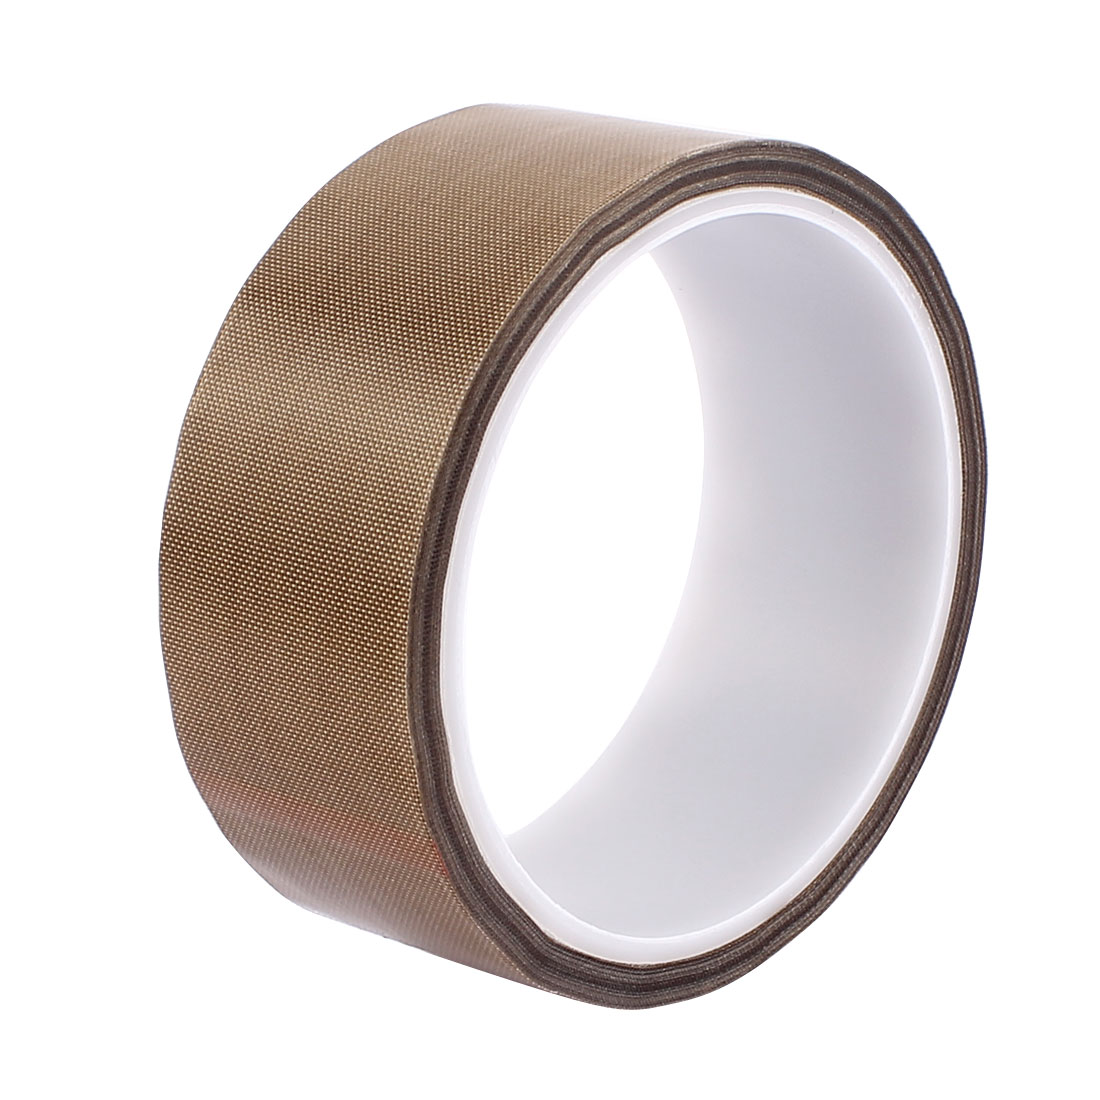 35mm Width 10M Long 0.13mm Thickness Nonstick High Temperature PTFE Adhesive Tape